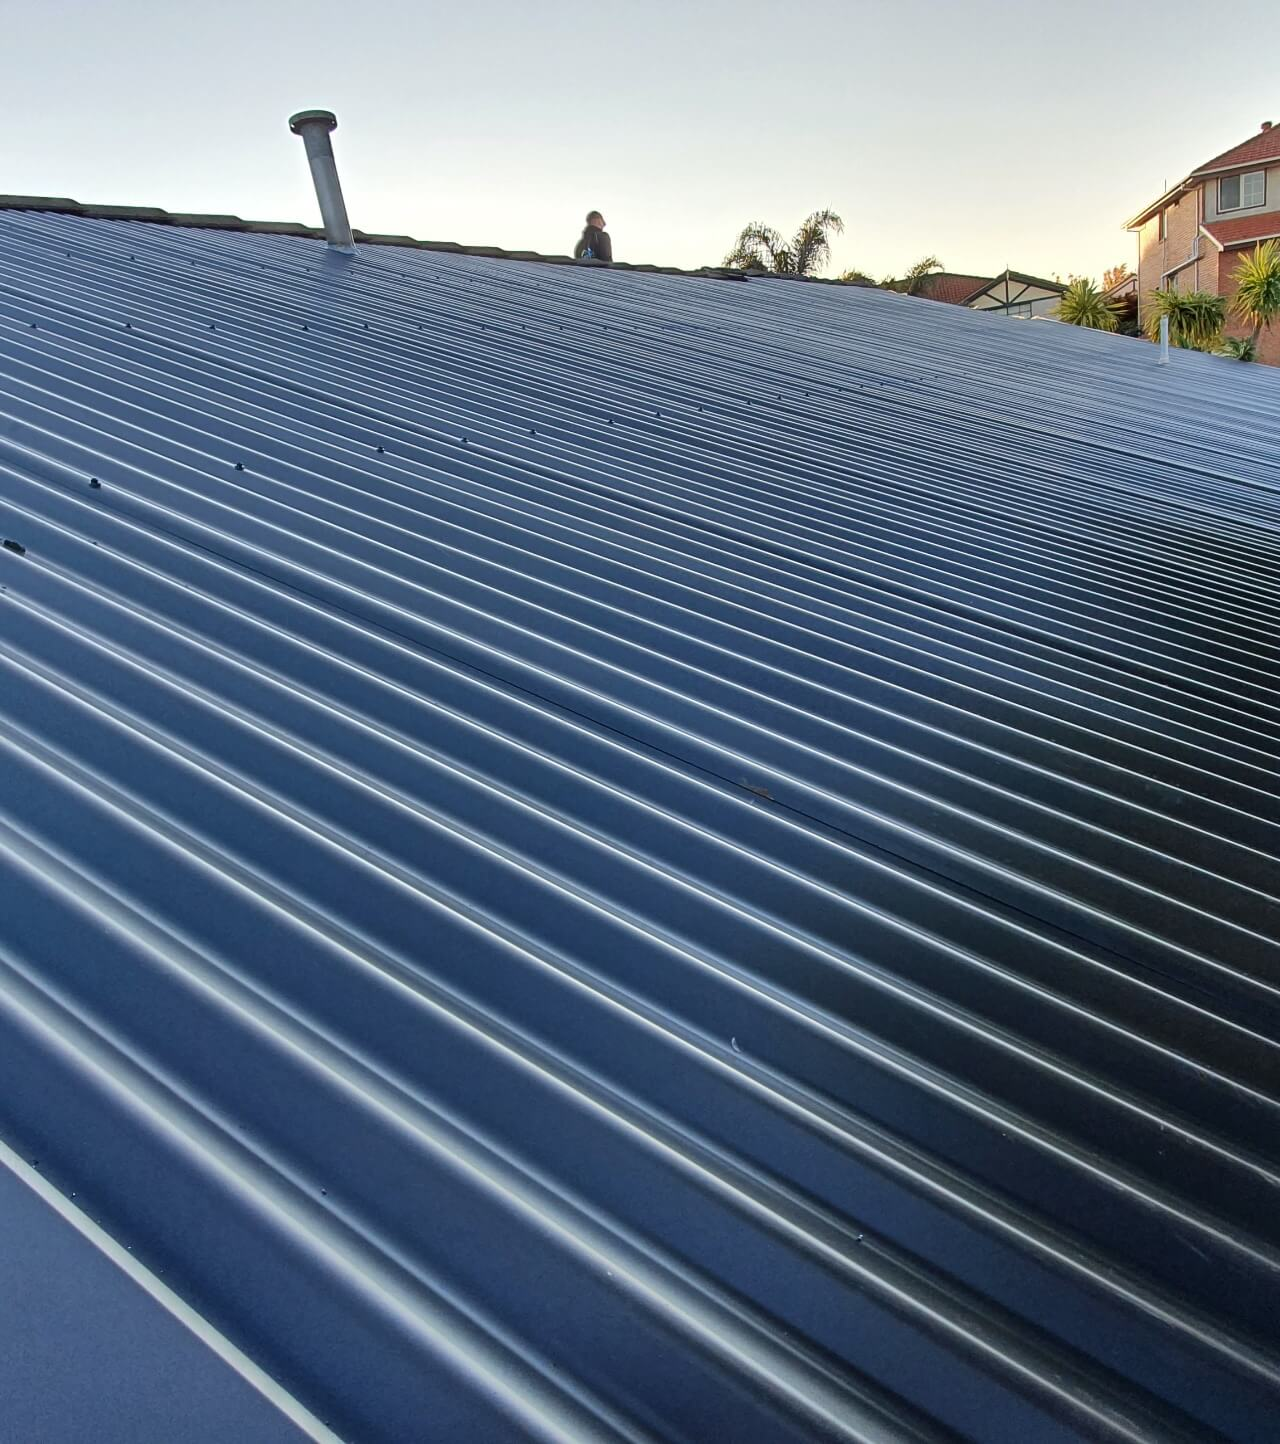 Colorbond metal roofing in the Melbourne suburbs